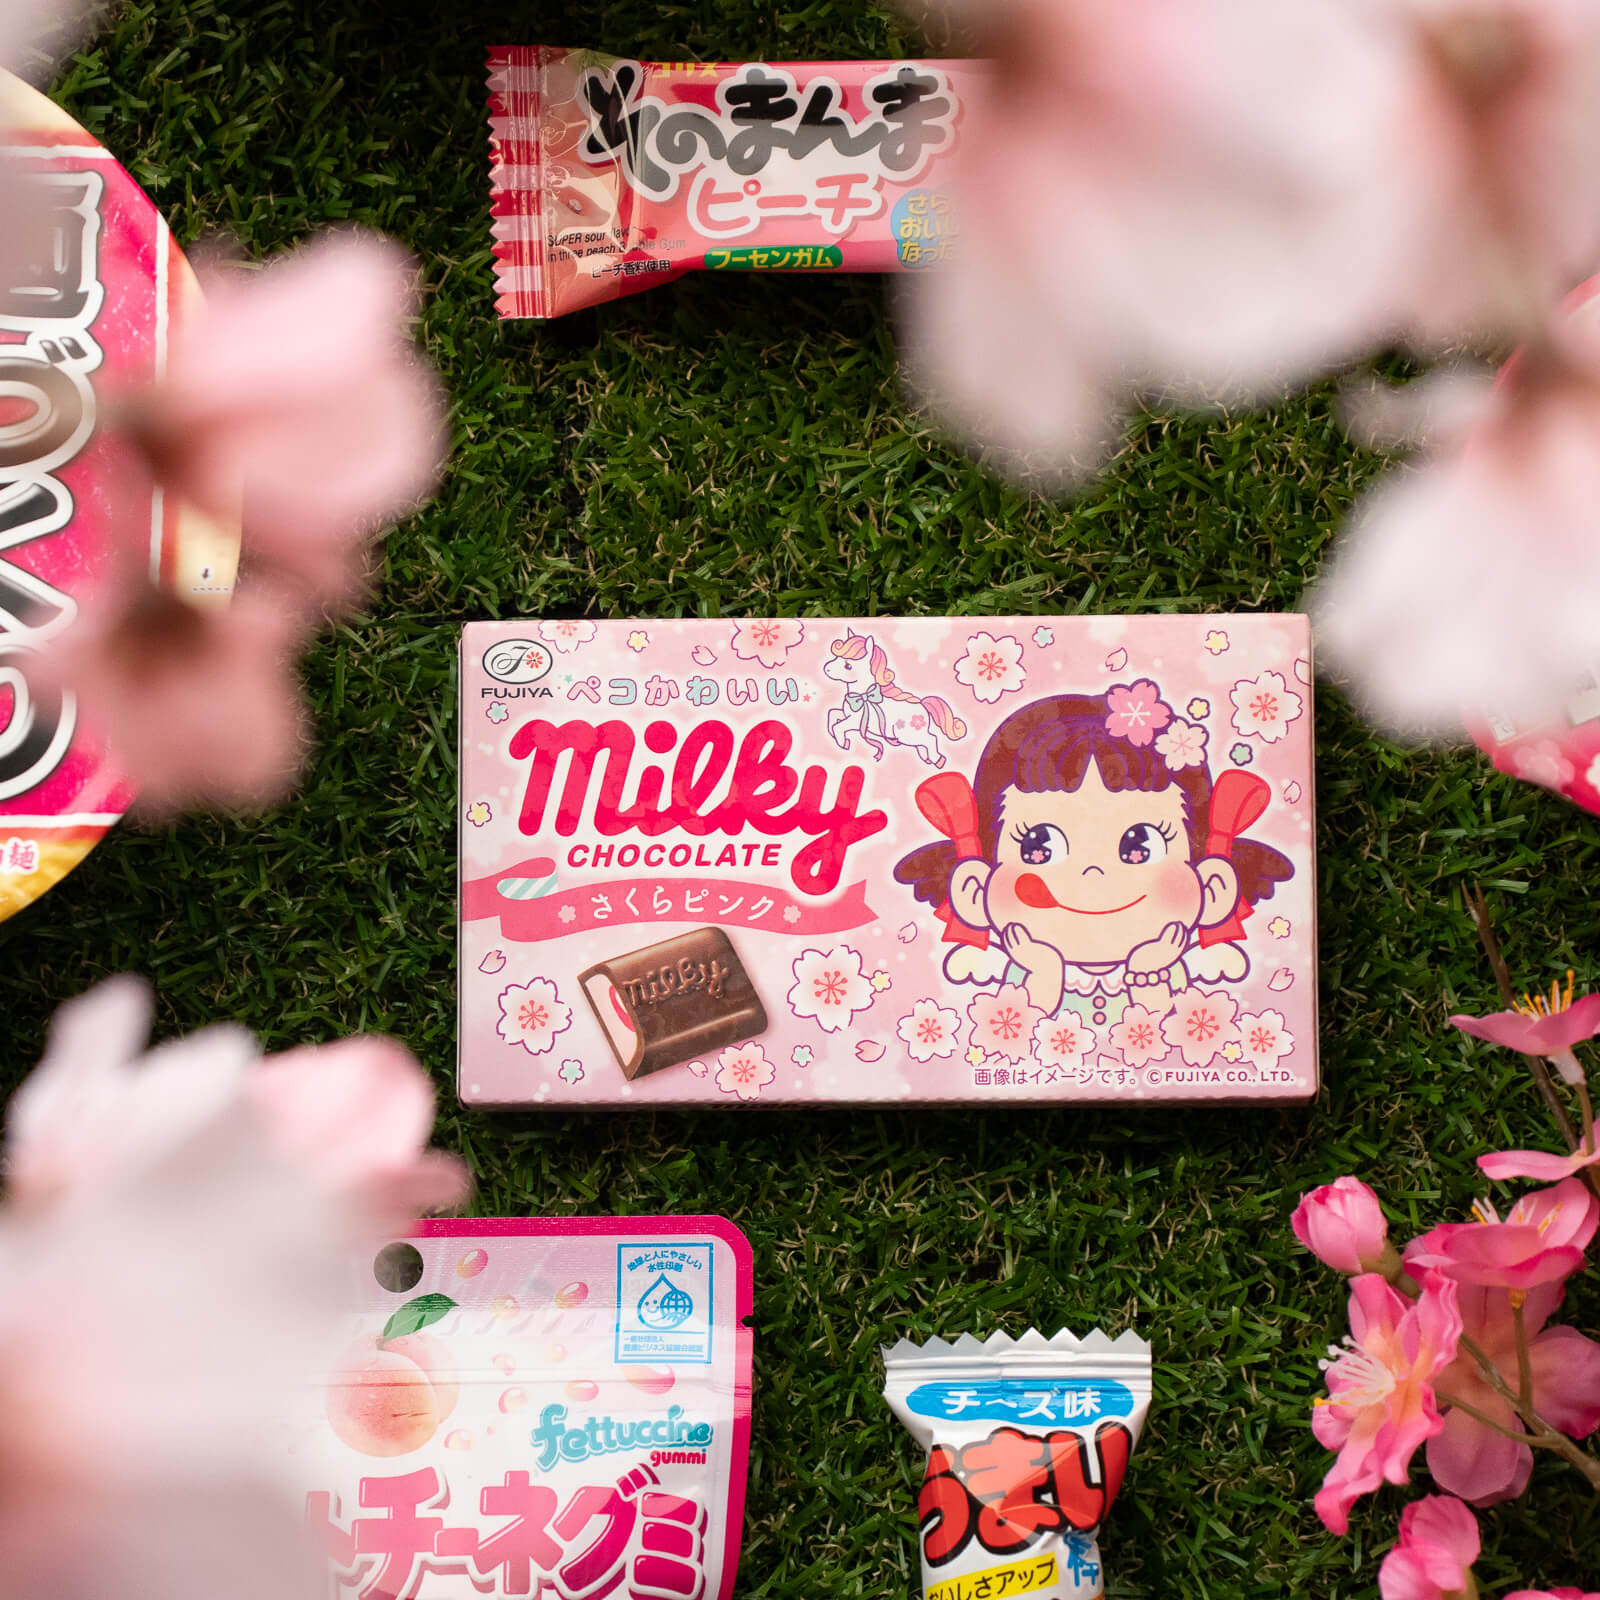 Milky's Pink Sakura Chocolate, included in Sweets & Ramen Mix Pack